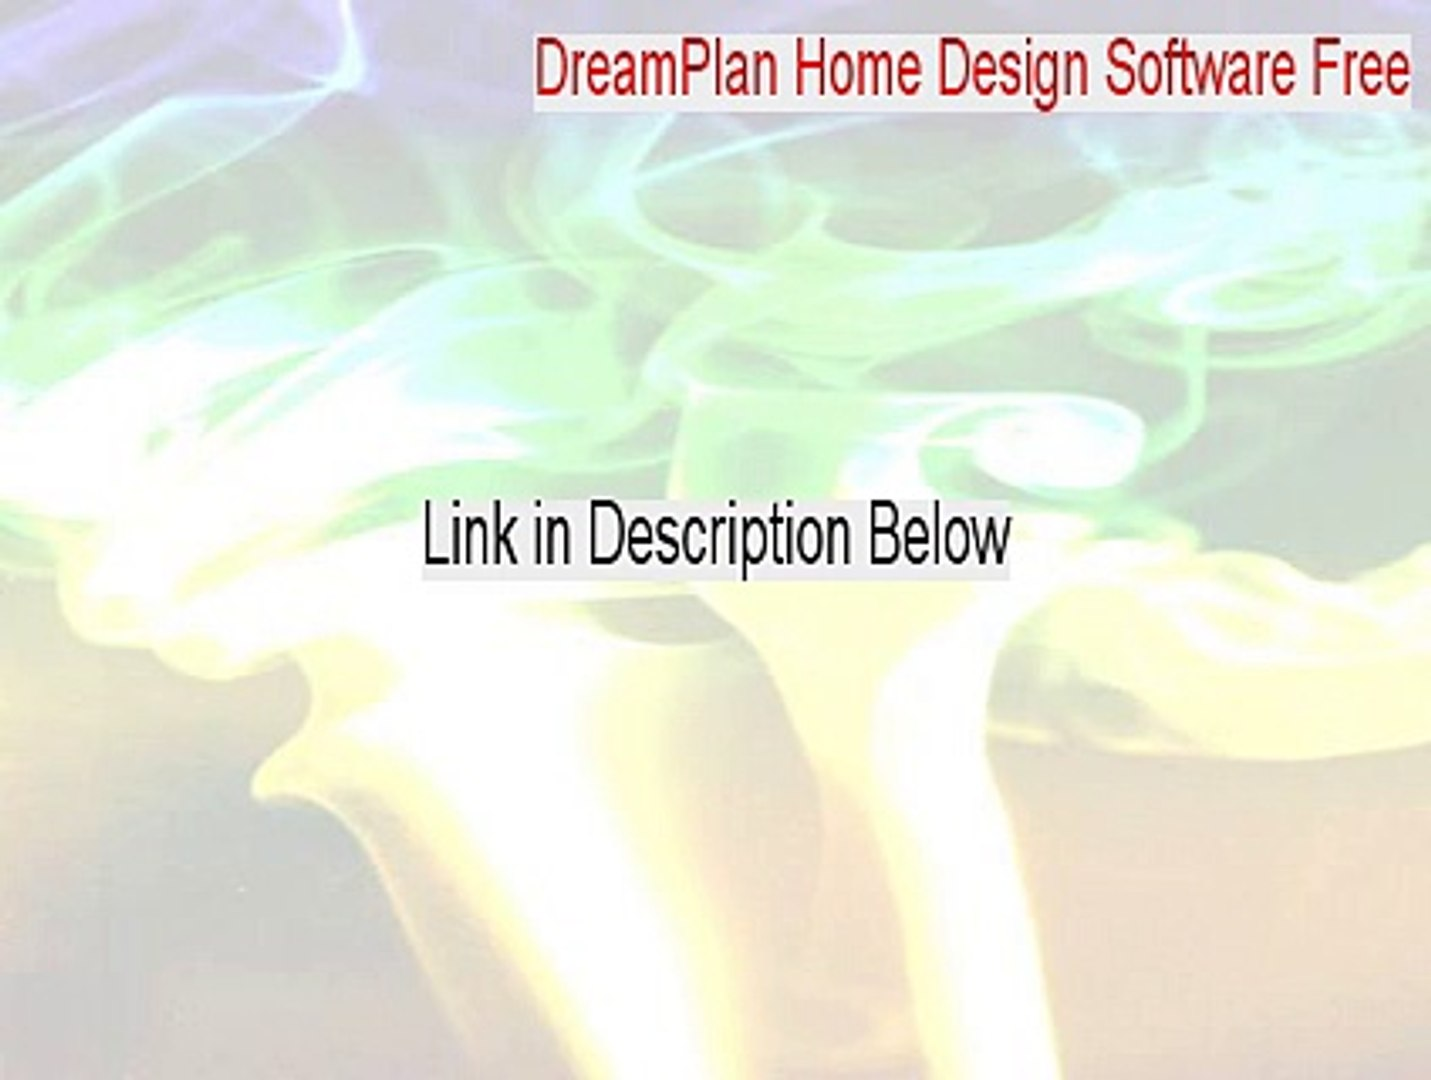 Dreamplan Home Design Software Free Crack Dreamplan Home Design Software Freedreamplan Home Design Software Free 2015 Video Dailymotion